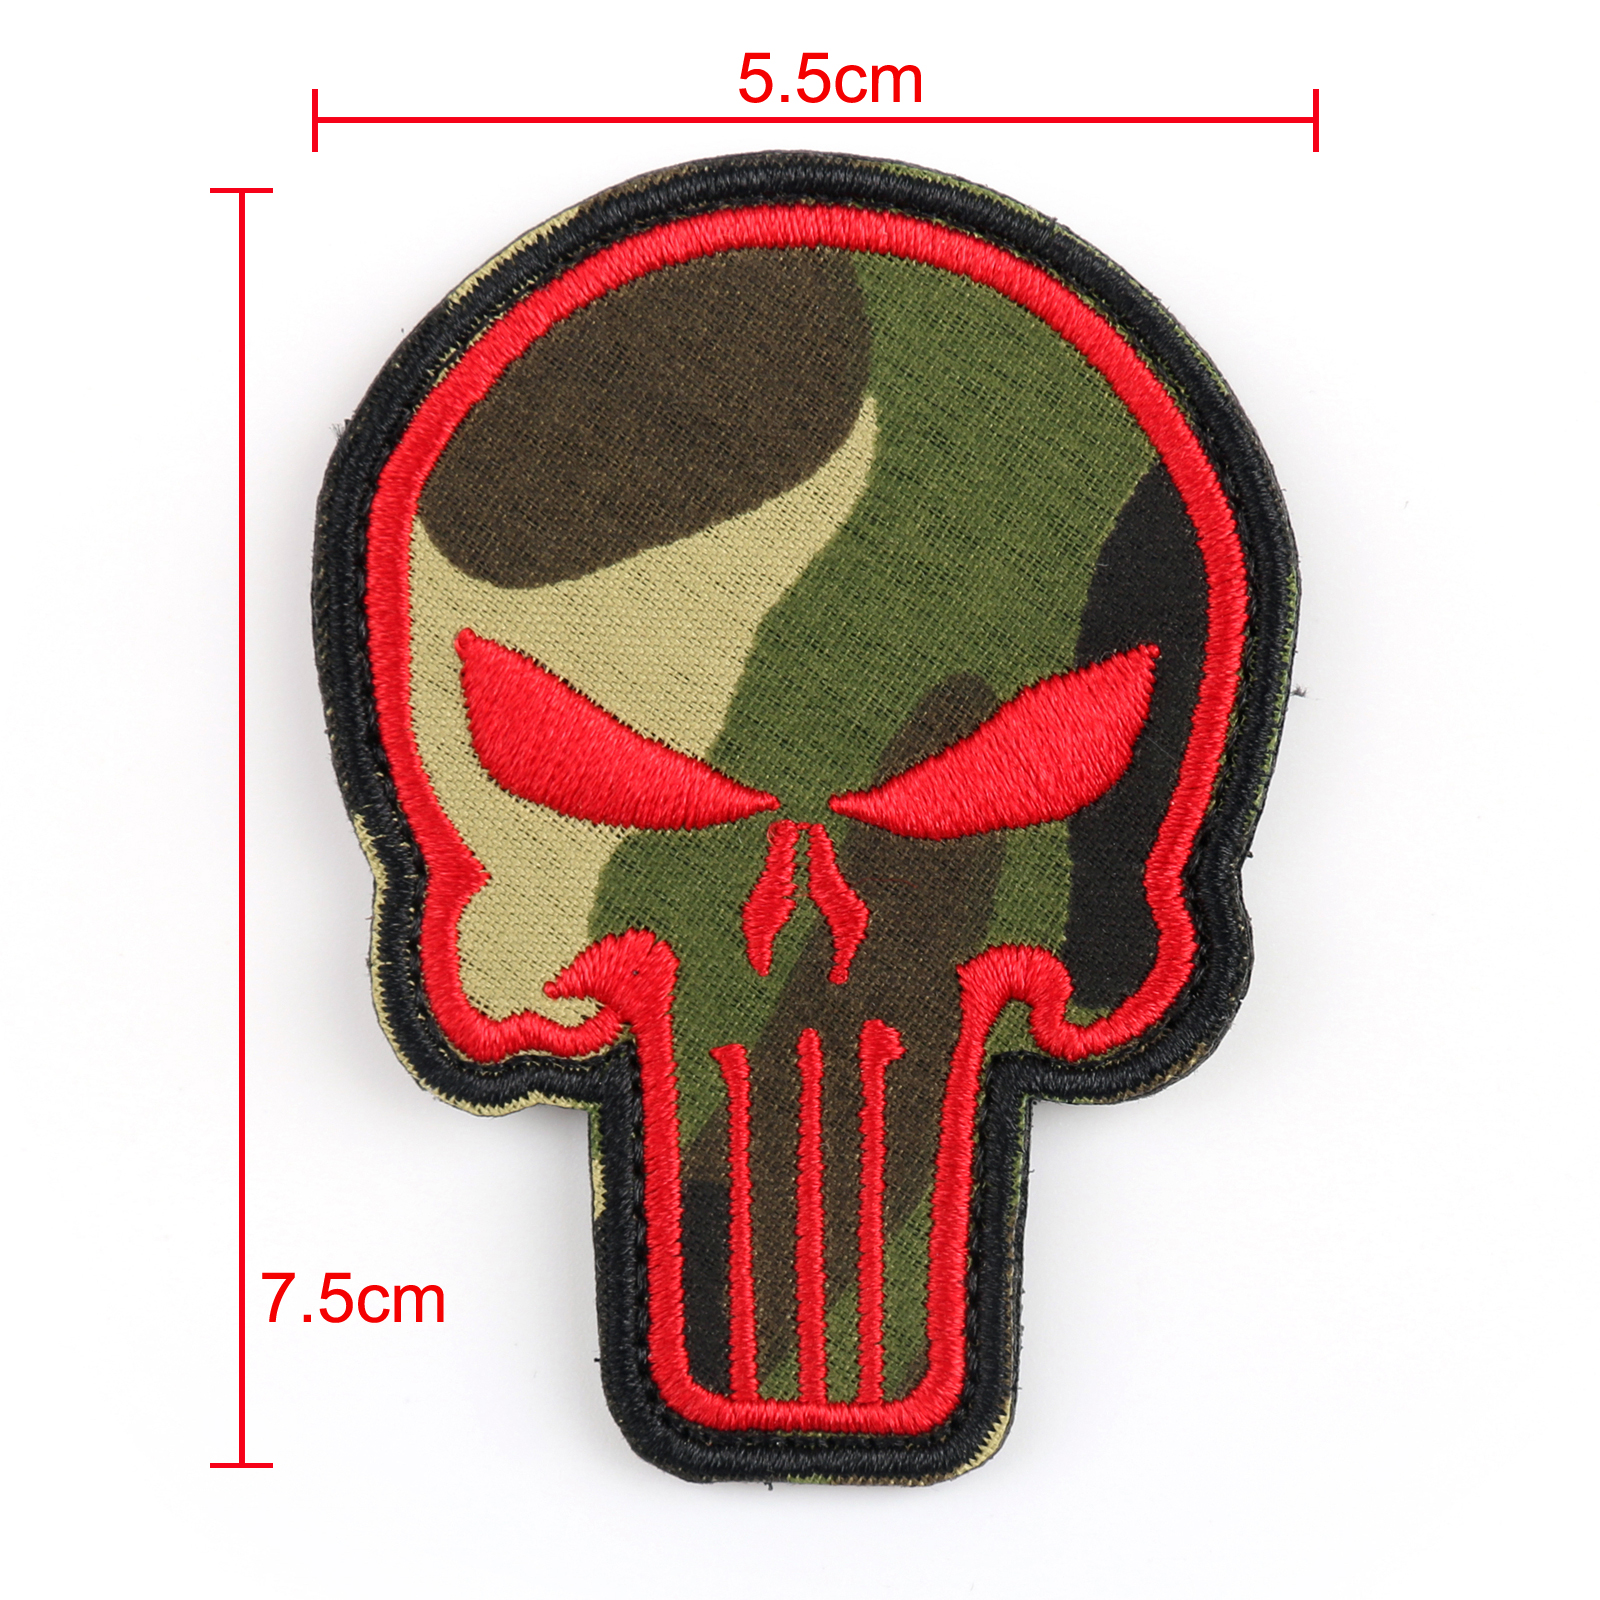 Punisher Skull Patches Usa Army Morale Tactical Badge